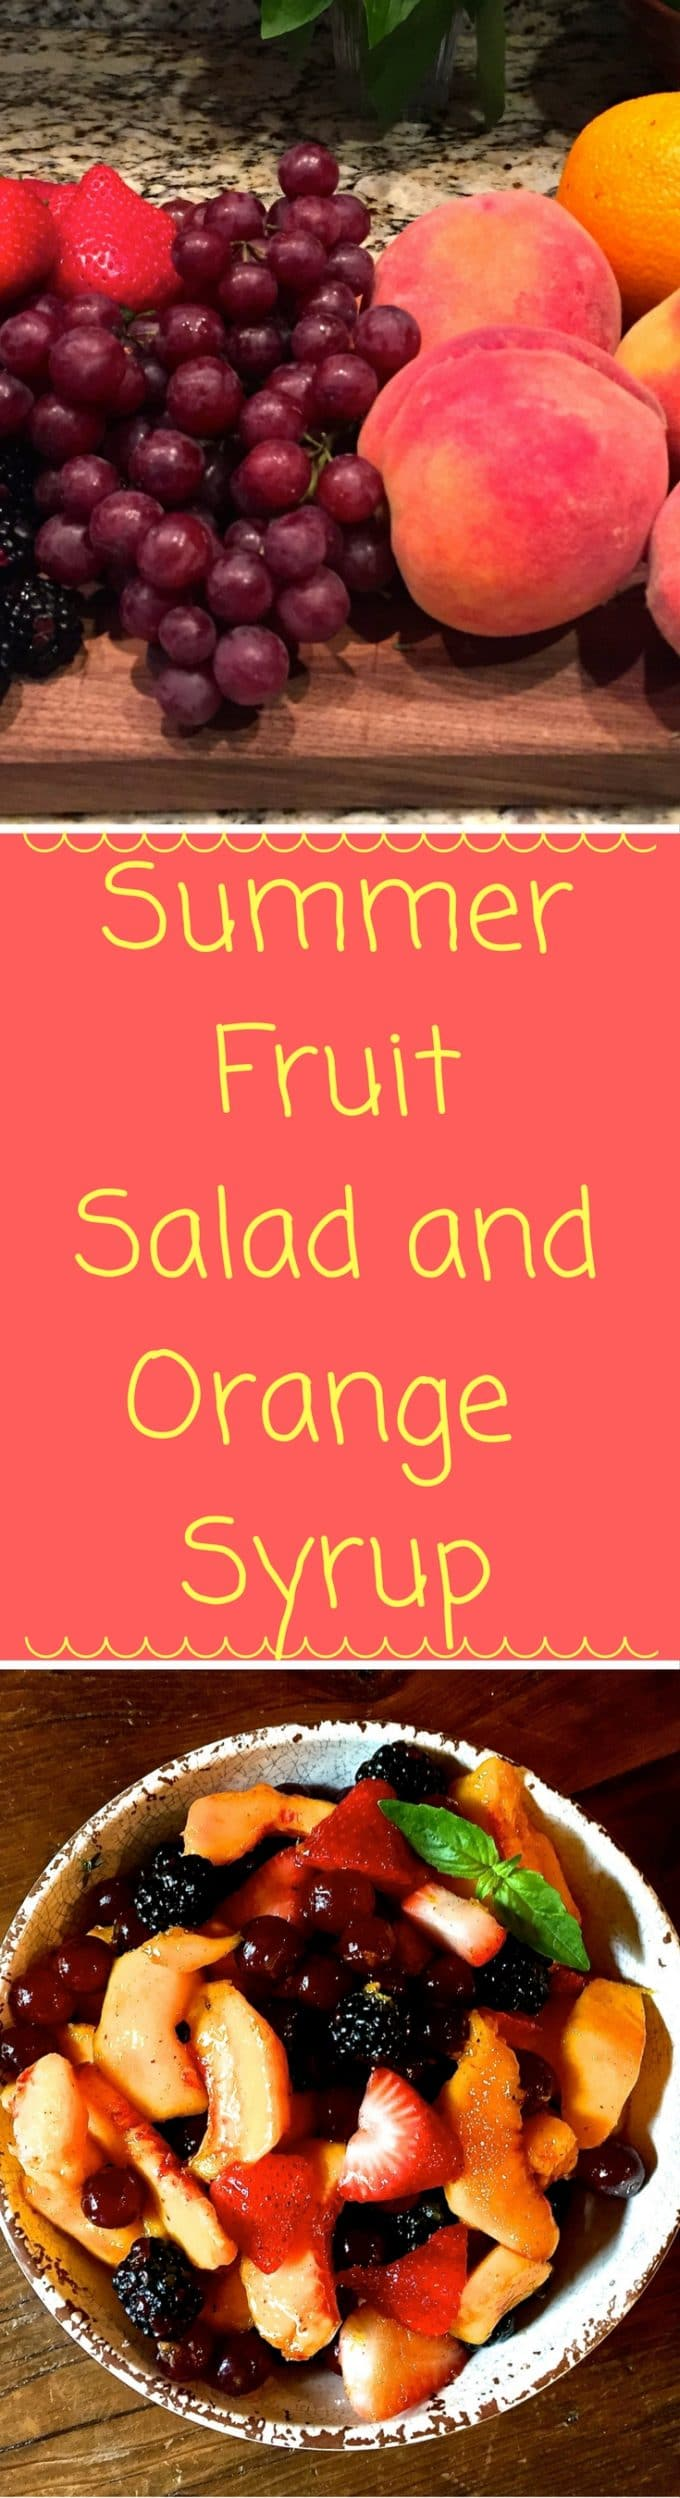 Summer Fruit Salad with Orange Syrup is fresh fruit with yummy orange syrup. It's perfect for breakfast, or anytime you crave something healthy, and refreshing!